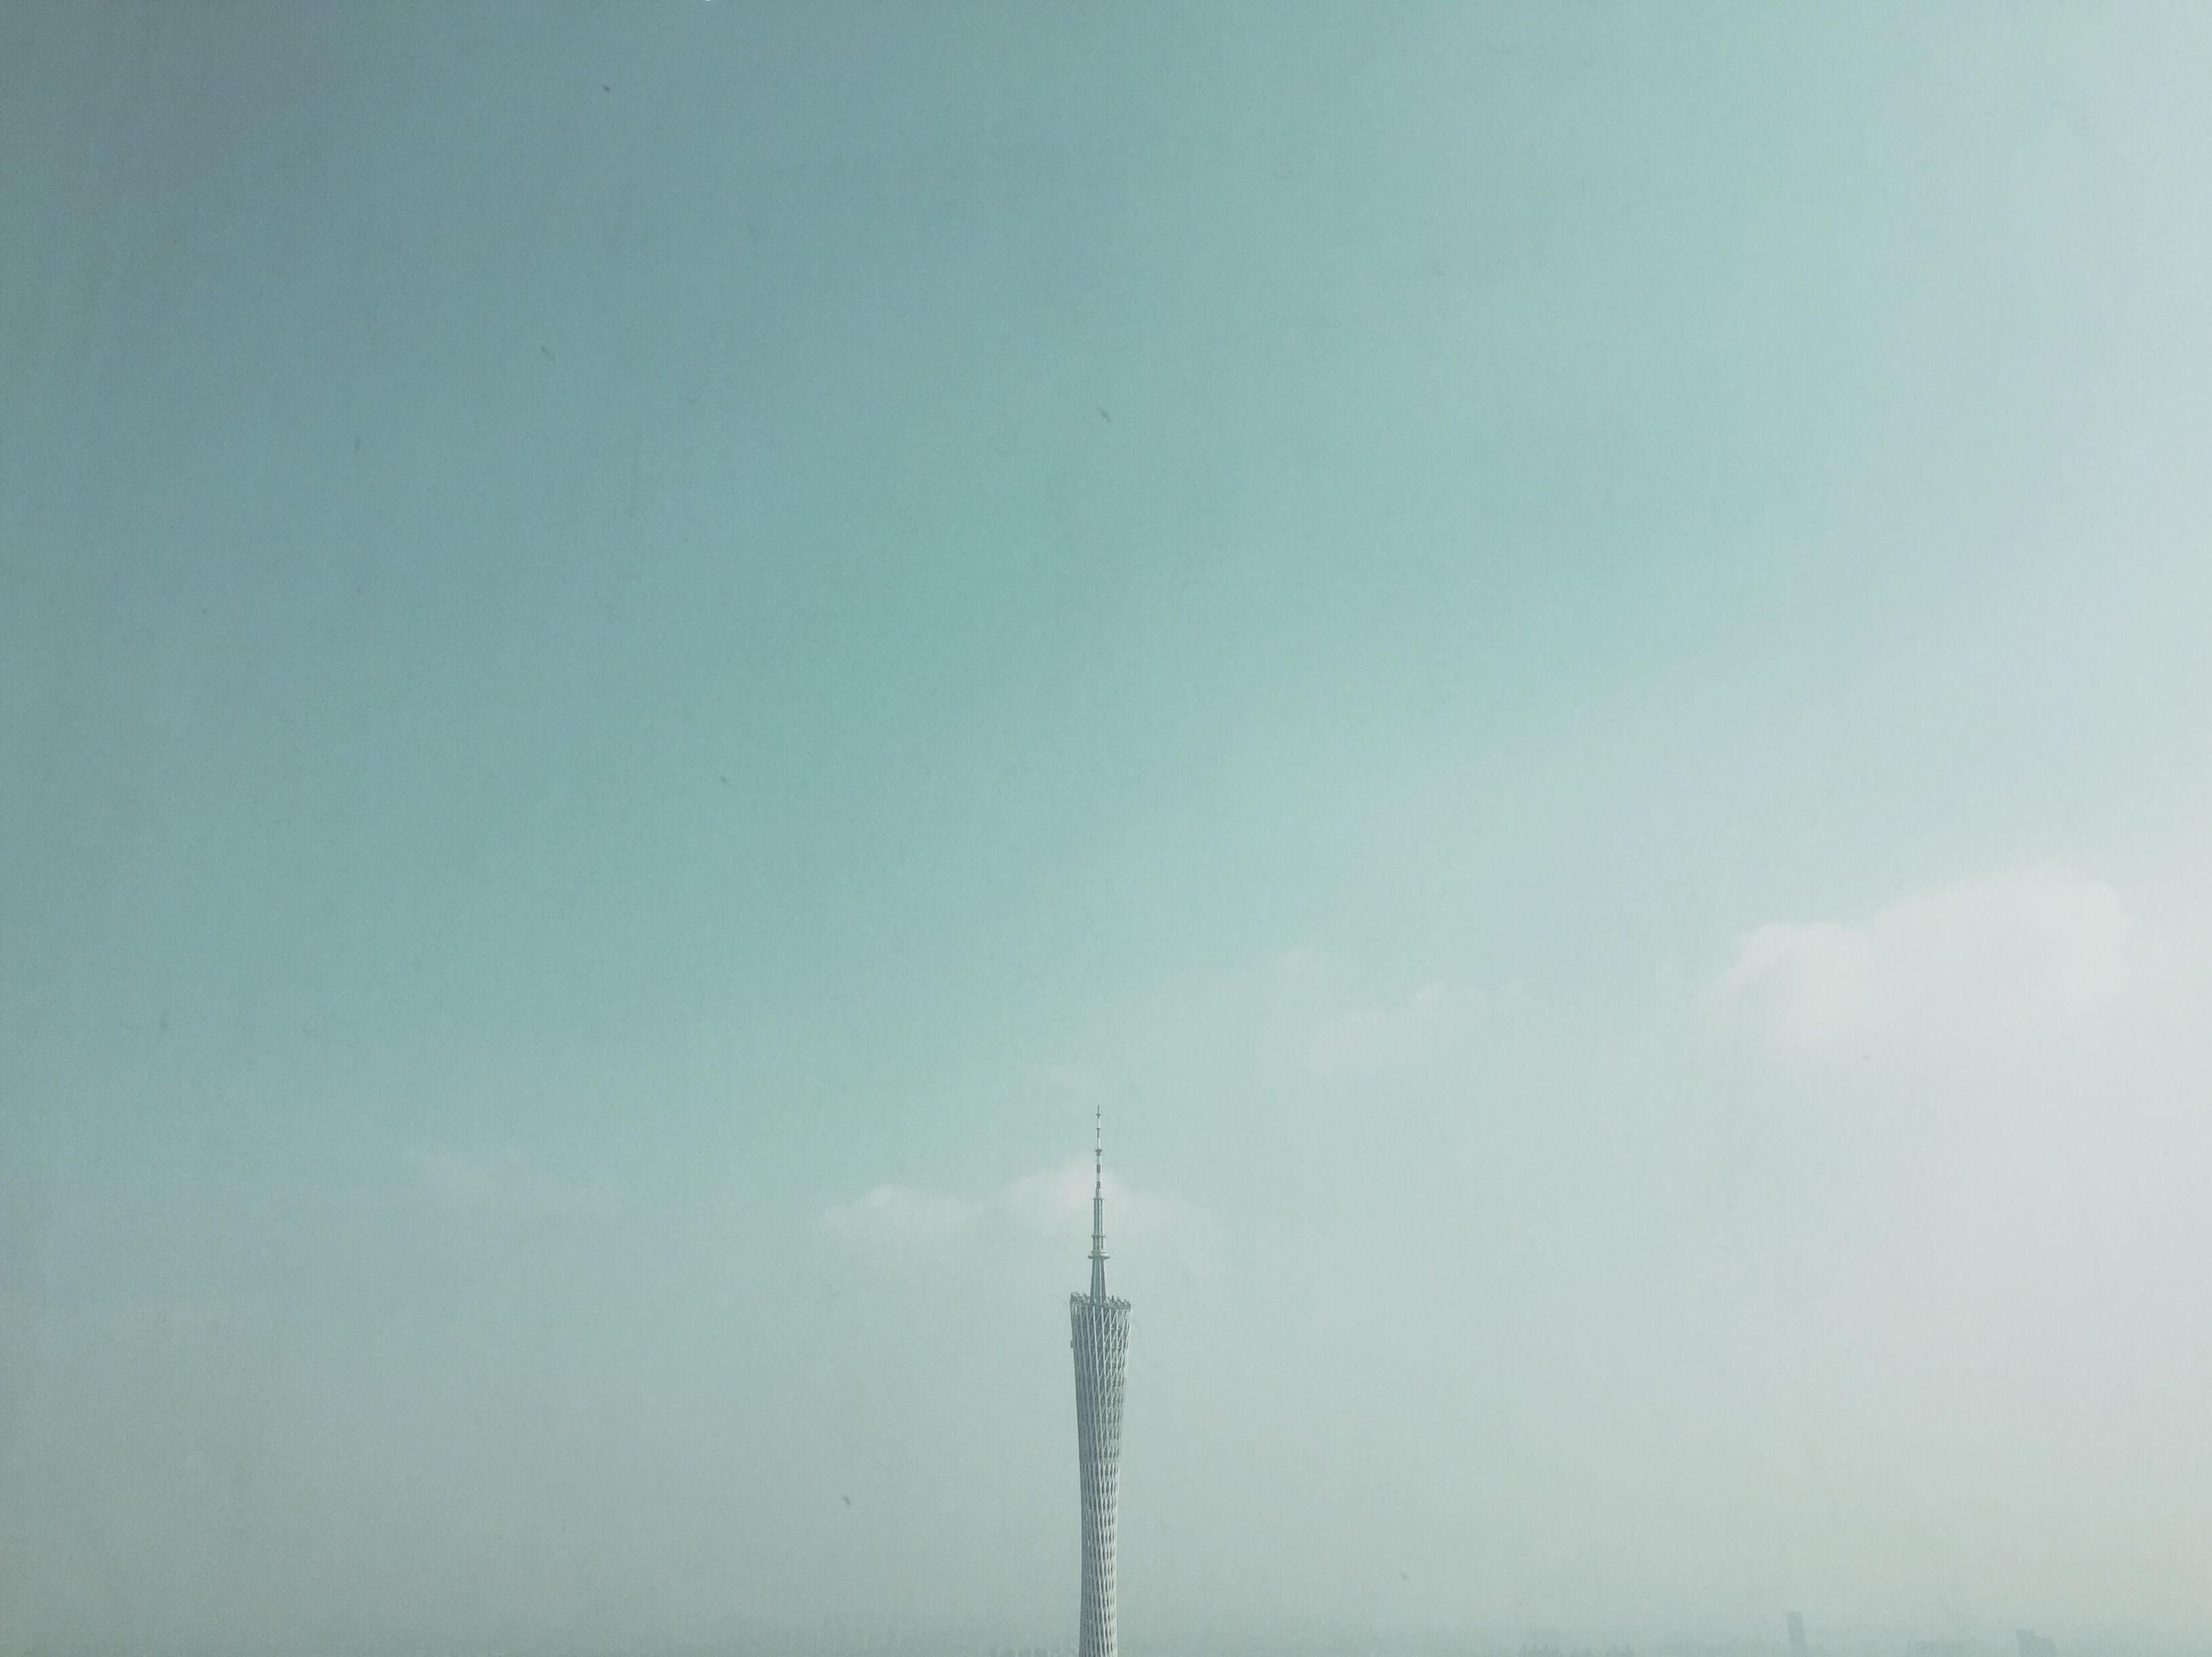 communications tower, low angle view, communication, high section, sky, tower, spire, tall - high, day, cloud - sky, scenics, tall, global communications, cloud, outdoors, tranquility, development, nature, blue, fernsehturm, no people, communication tower, atmosphere